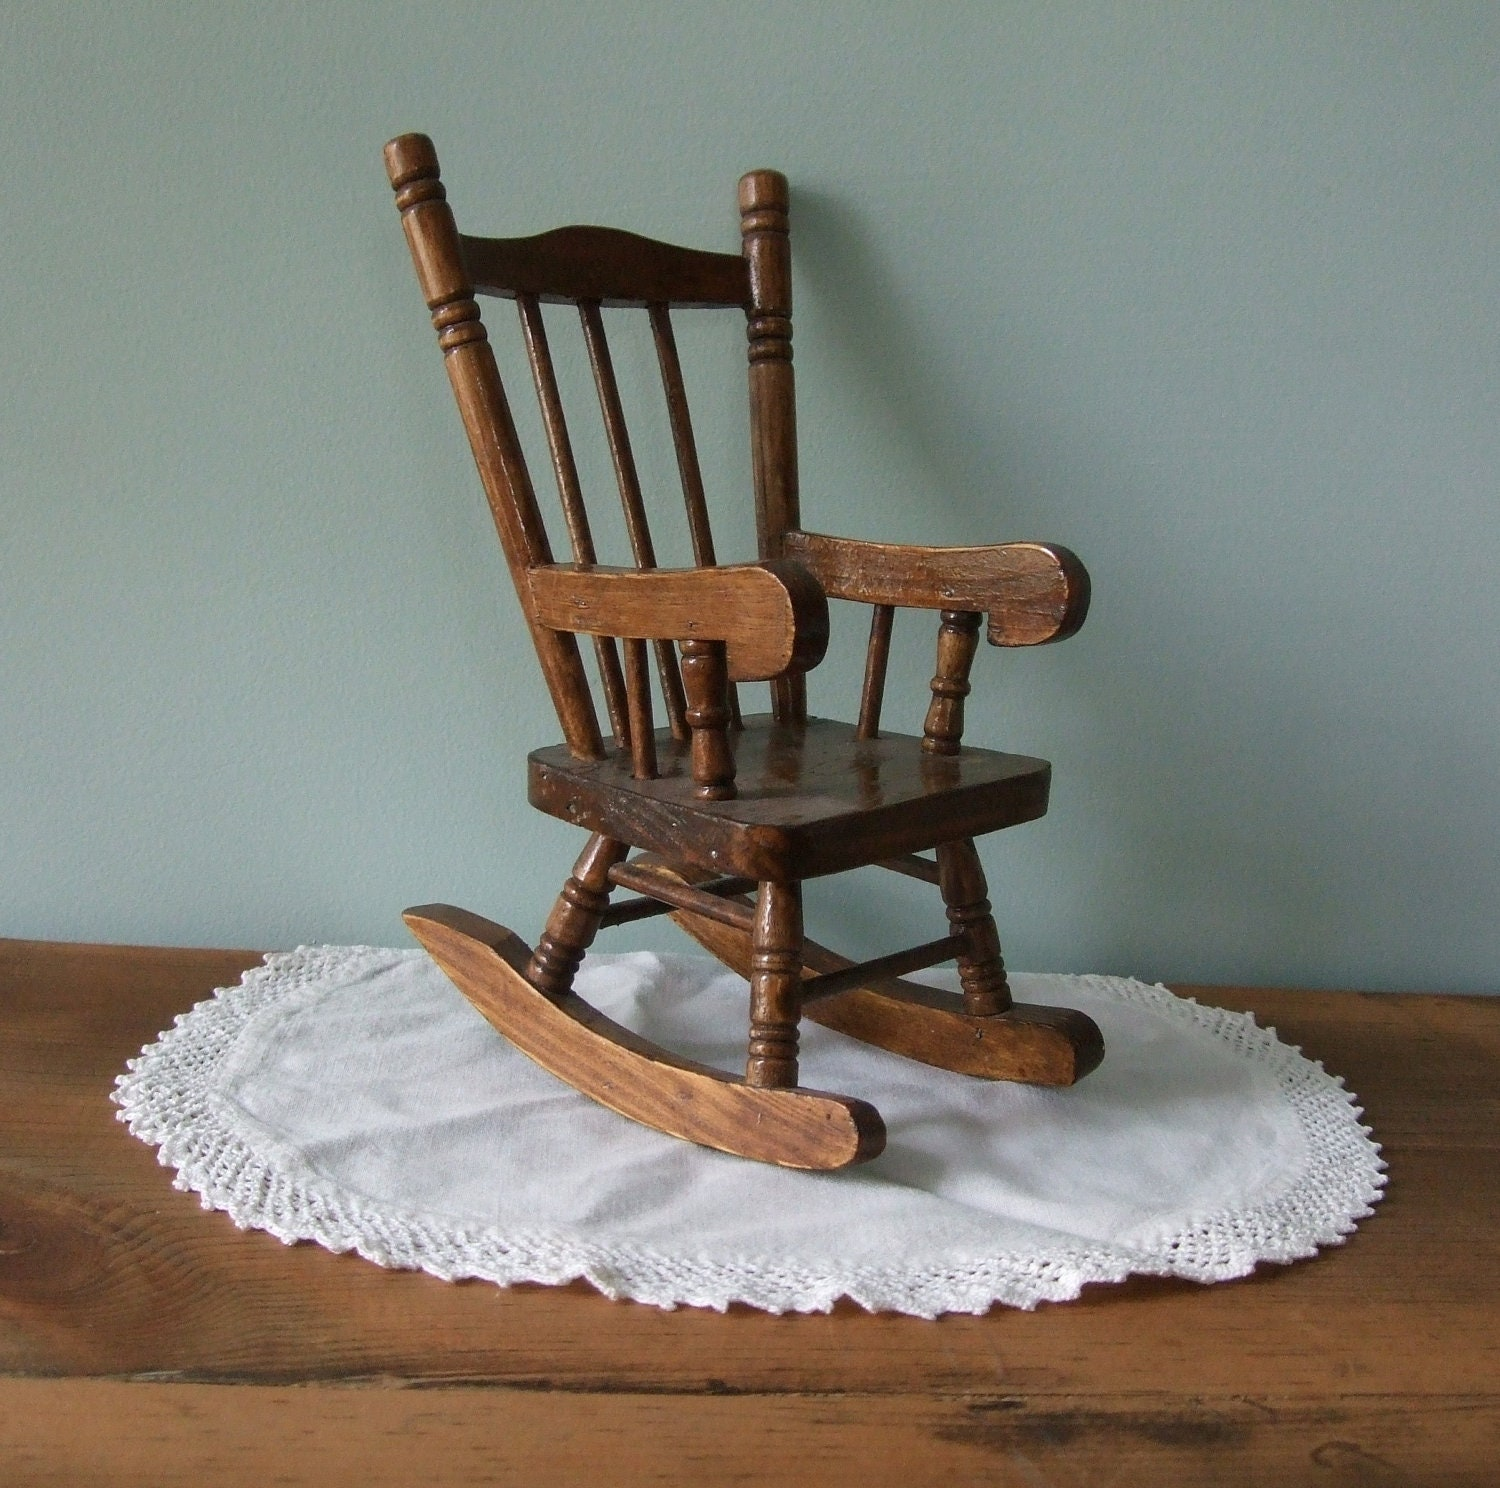 Rocking Chair Wooden Miniature Doll House Rustic Decor